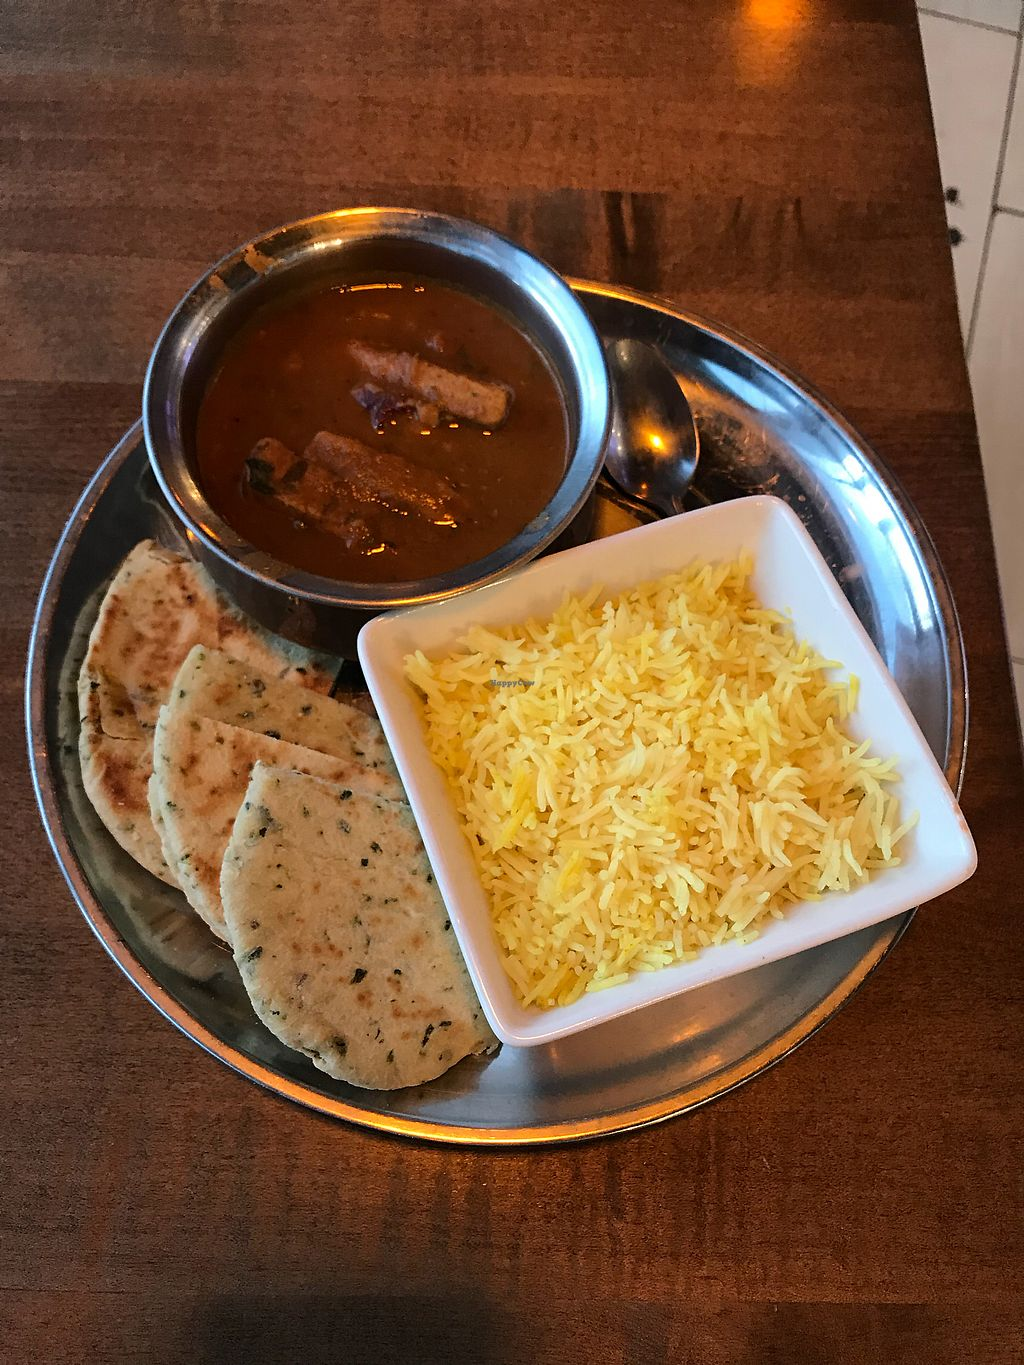 "Photo of The Street Eatery  by <a href=""/members/profile/vegetariangirl"">vegetariangirl</a> <br/>Vegan butter chikin and naan <br/> February 16, 2018  - <a href='/contact/abuse/image/102614/360062'>Report</a>"